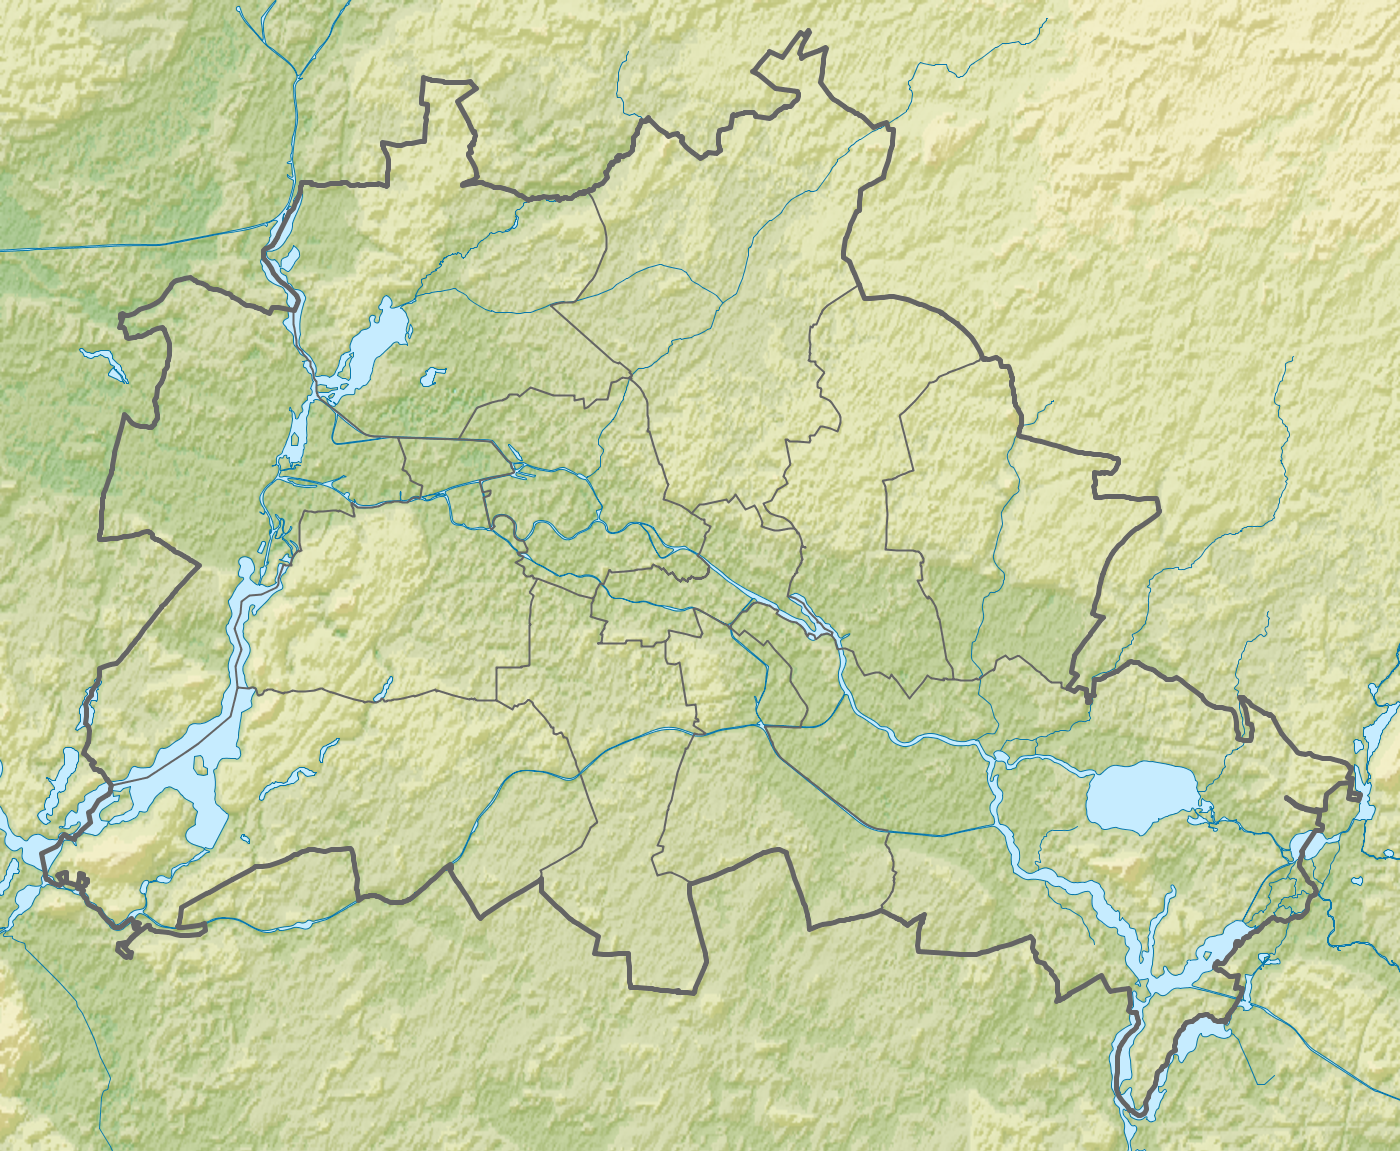 Datei:Berlin relief location map.png – Wikipedia